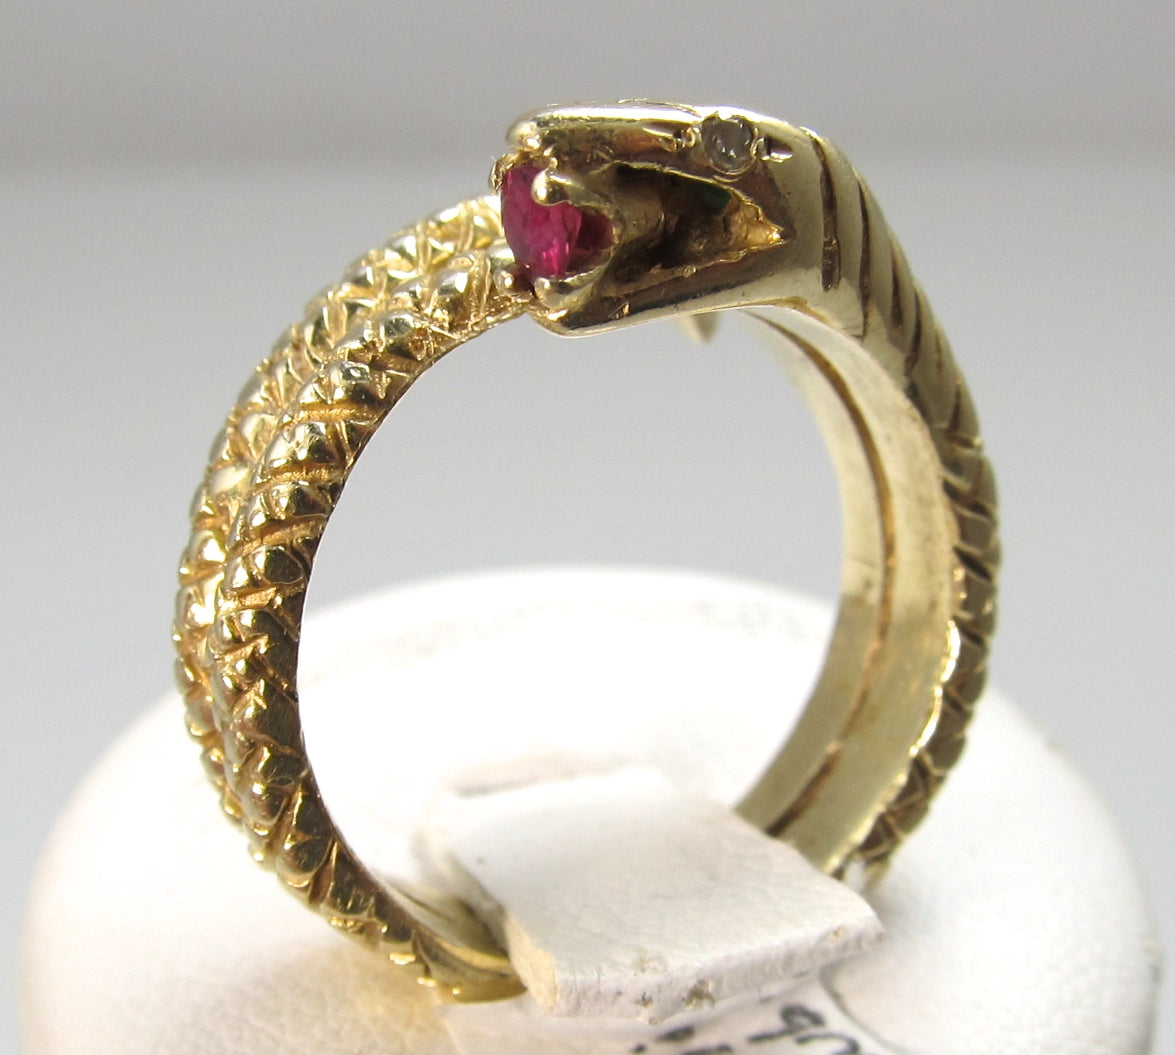 Vintage coiled snake ring, ruby, 14k yellow gold, Victorious Cape May